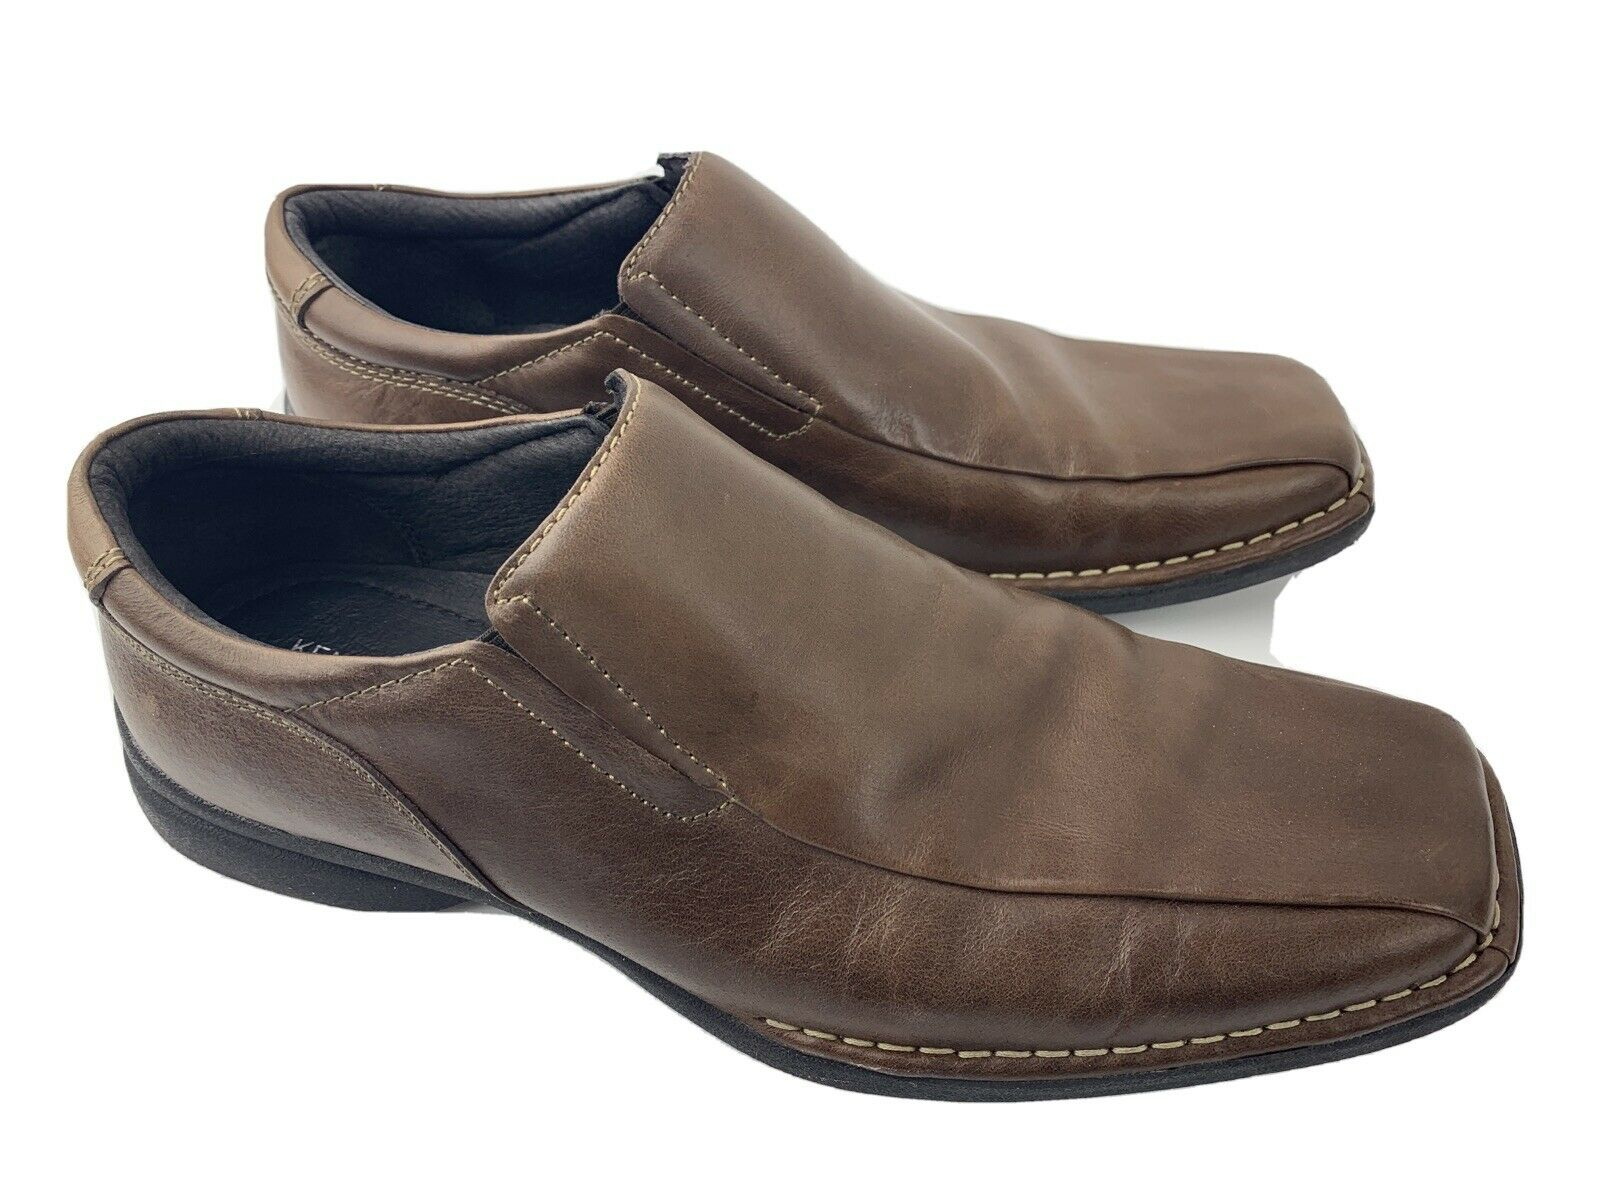 Kenneth Cole Punchual Brown Leather Slip On Men's Shoes Size 11.5